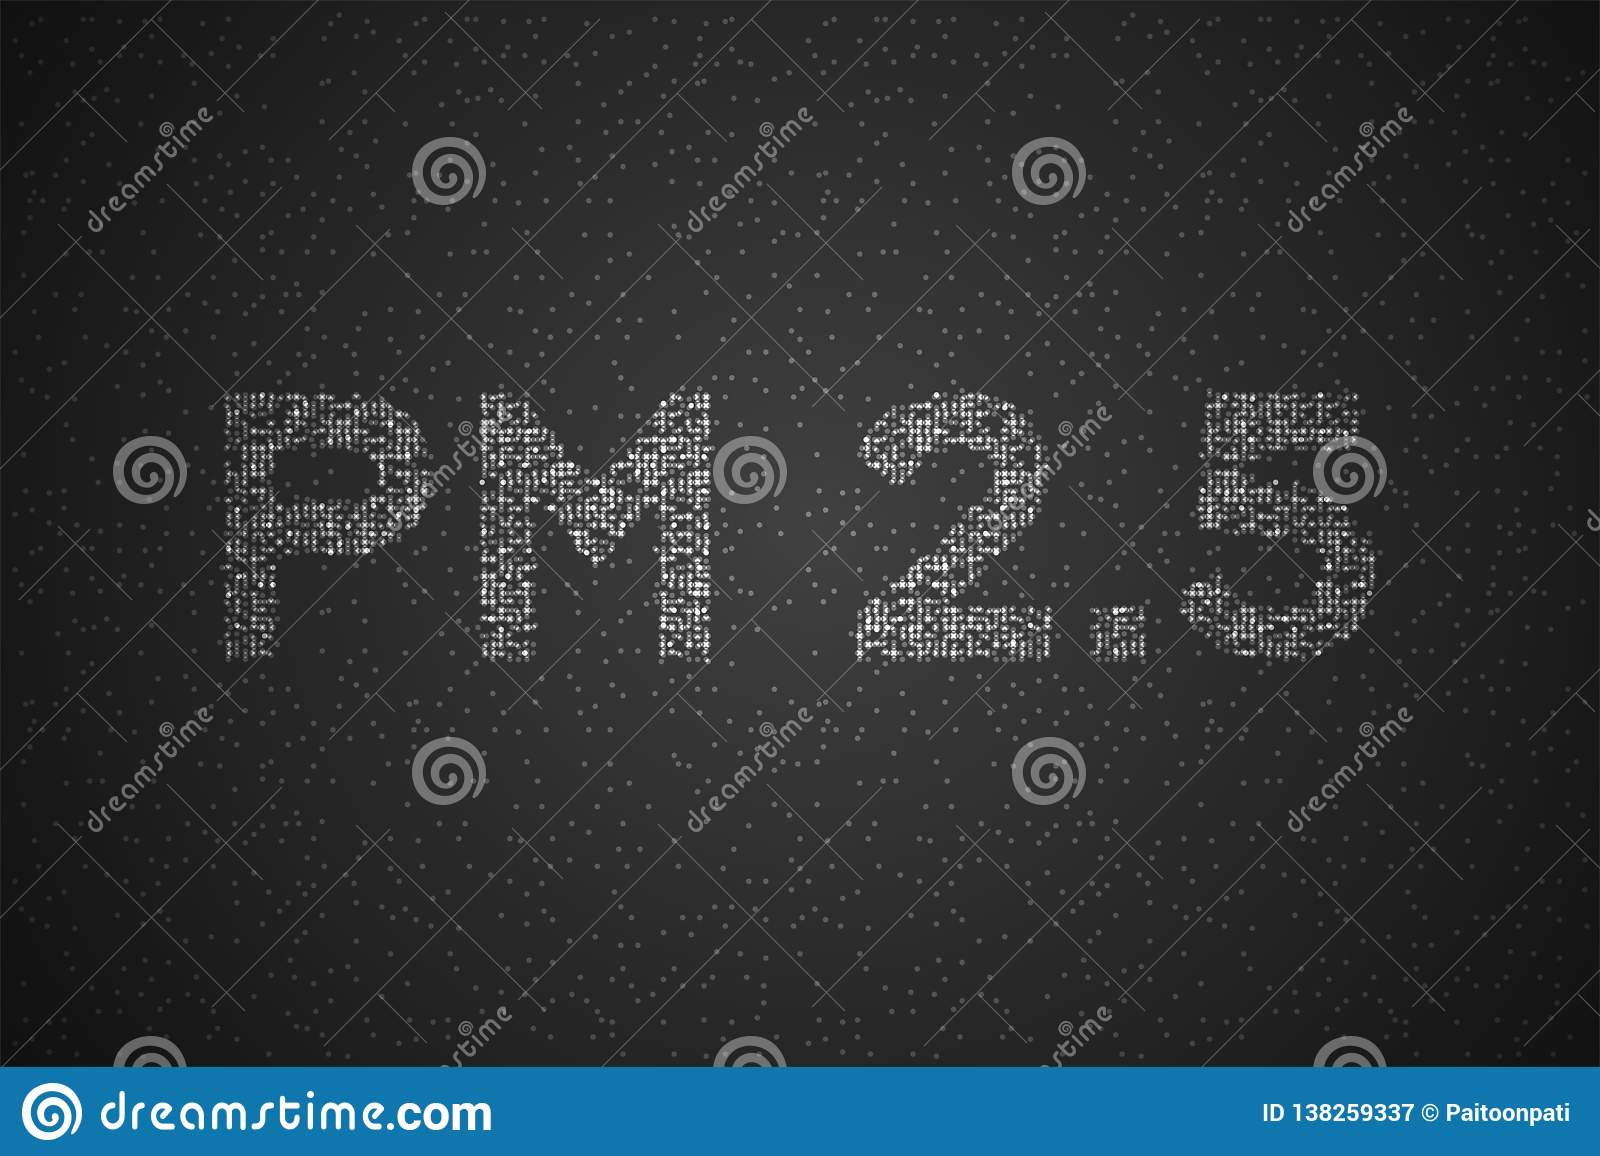 PM 2.5 text Abstract Geometric Circle dot pixel pattern, Pollution concept design white color illustration isolated on black